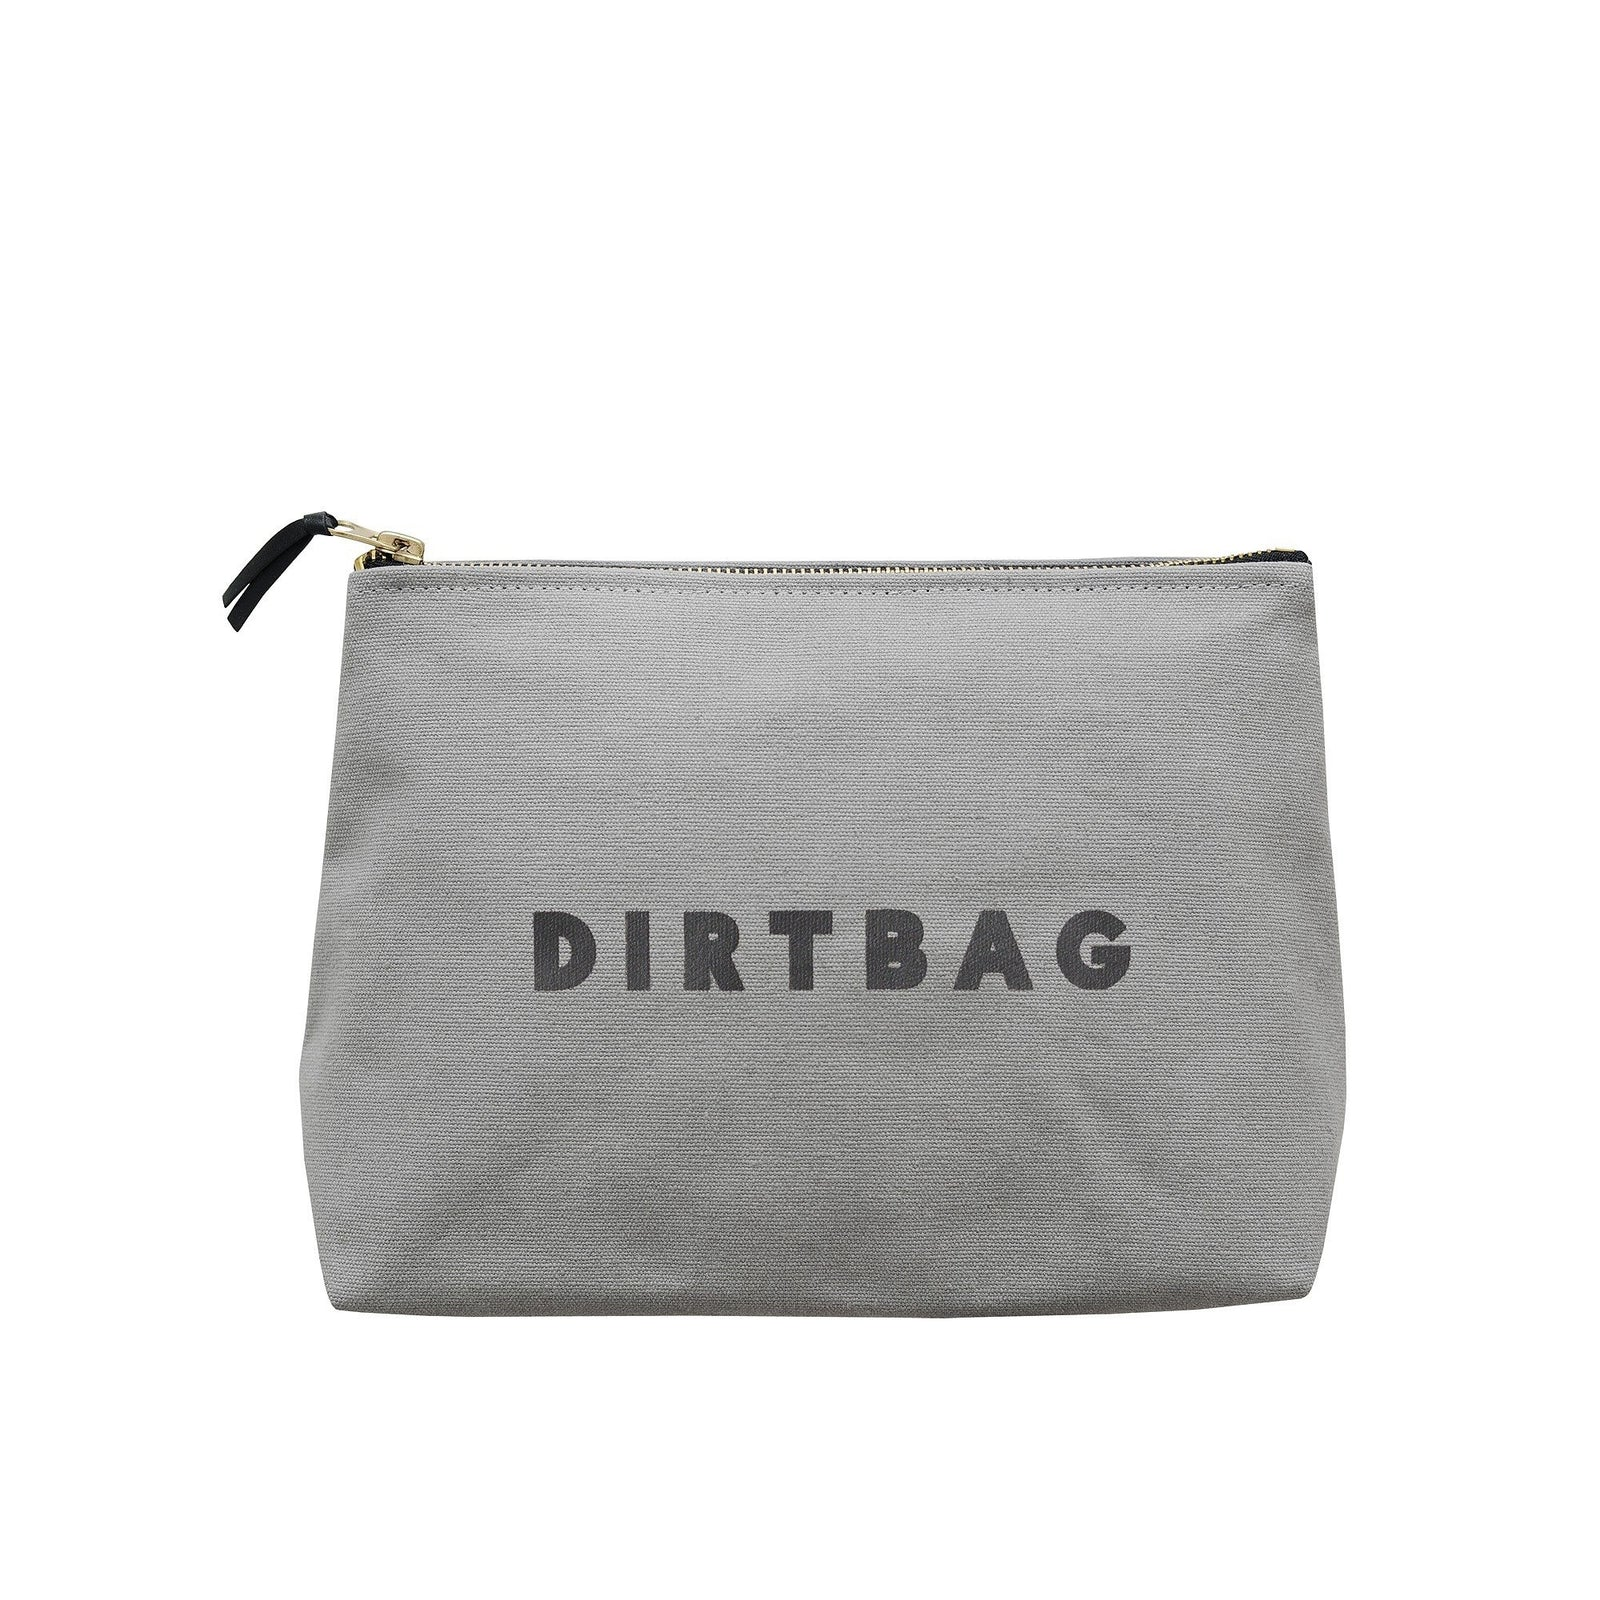 Makeup bag by Alphabet bags